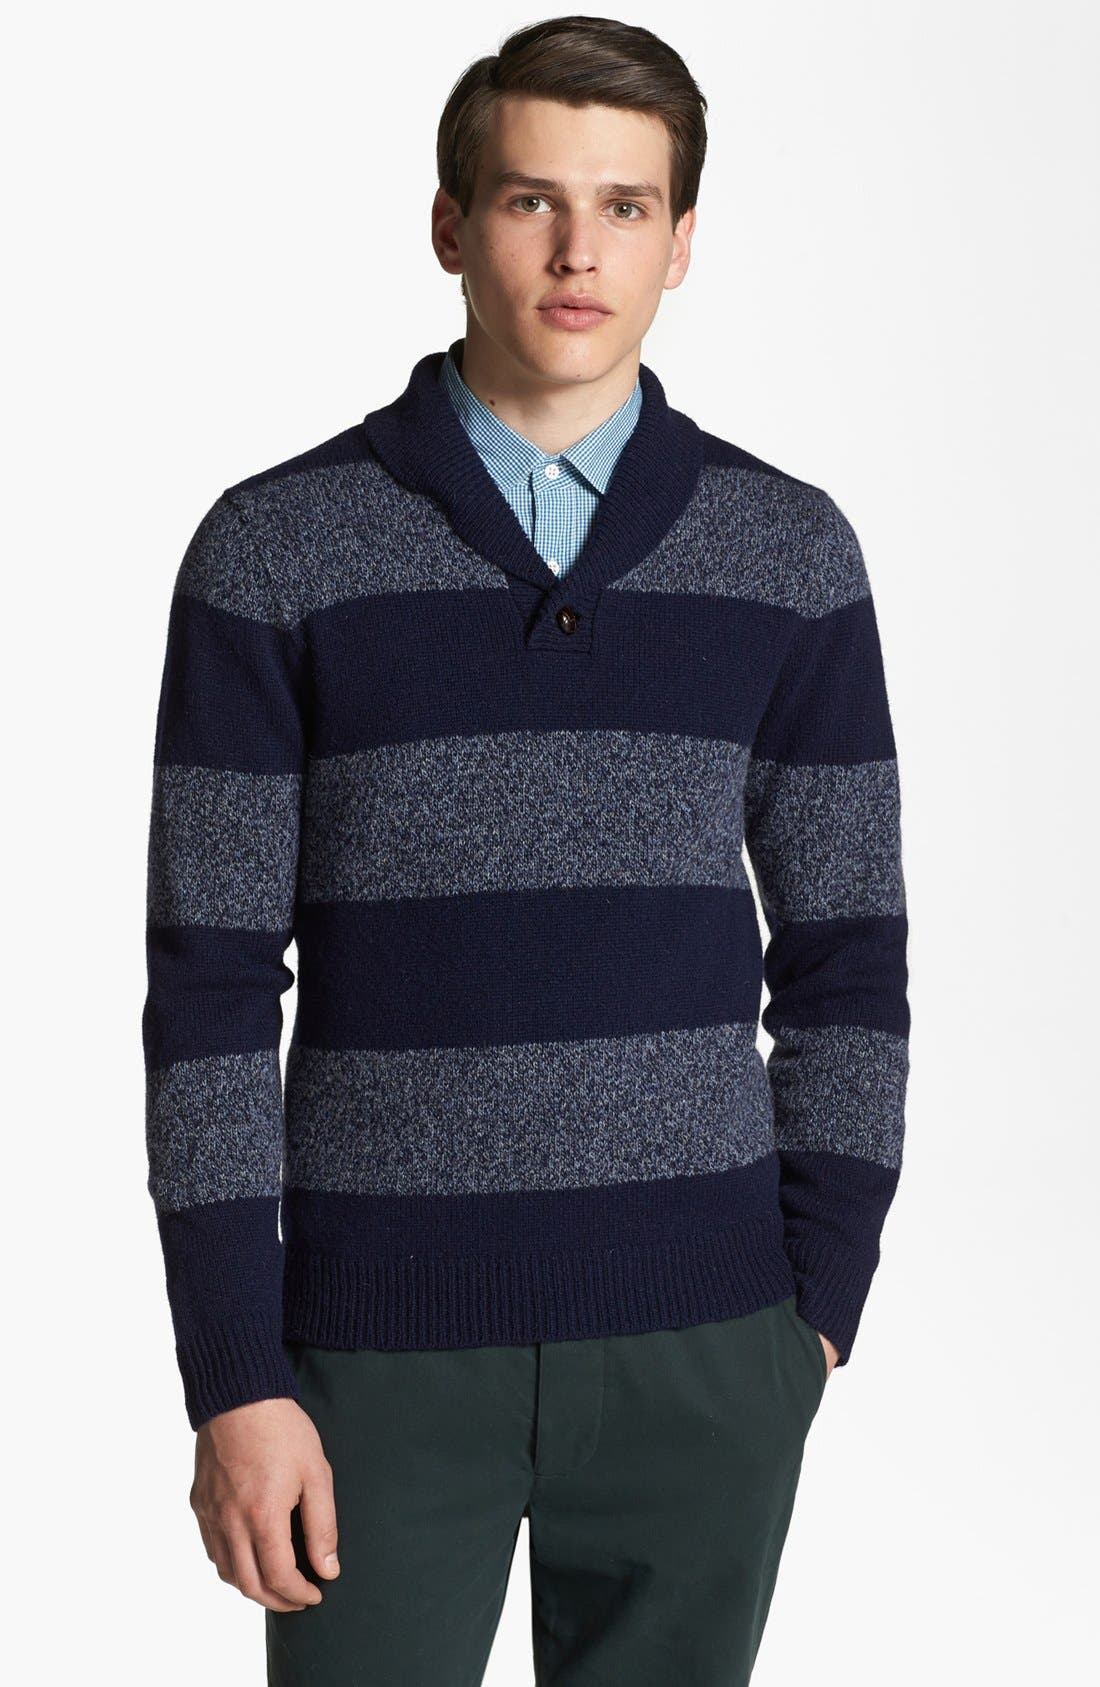 Alternate Image 1 Selected - Shipley & Halmos 'Earnest' Stripe Wool Shawl Collar Sweater